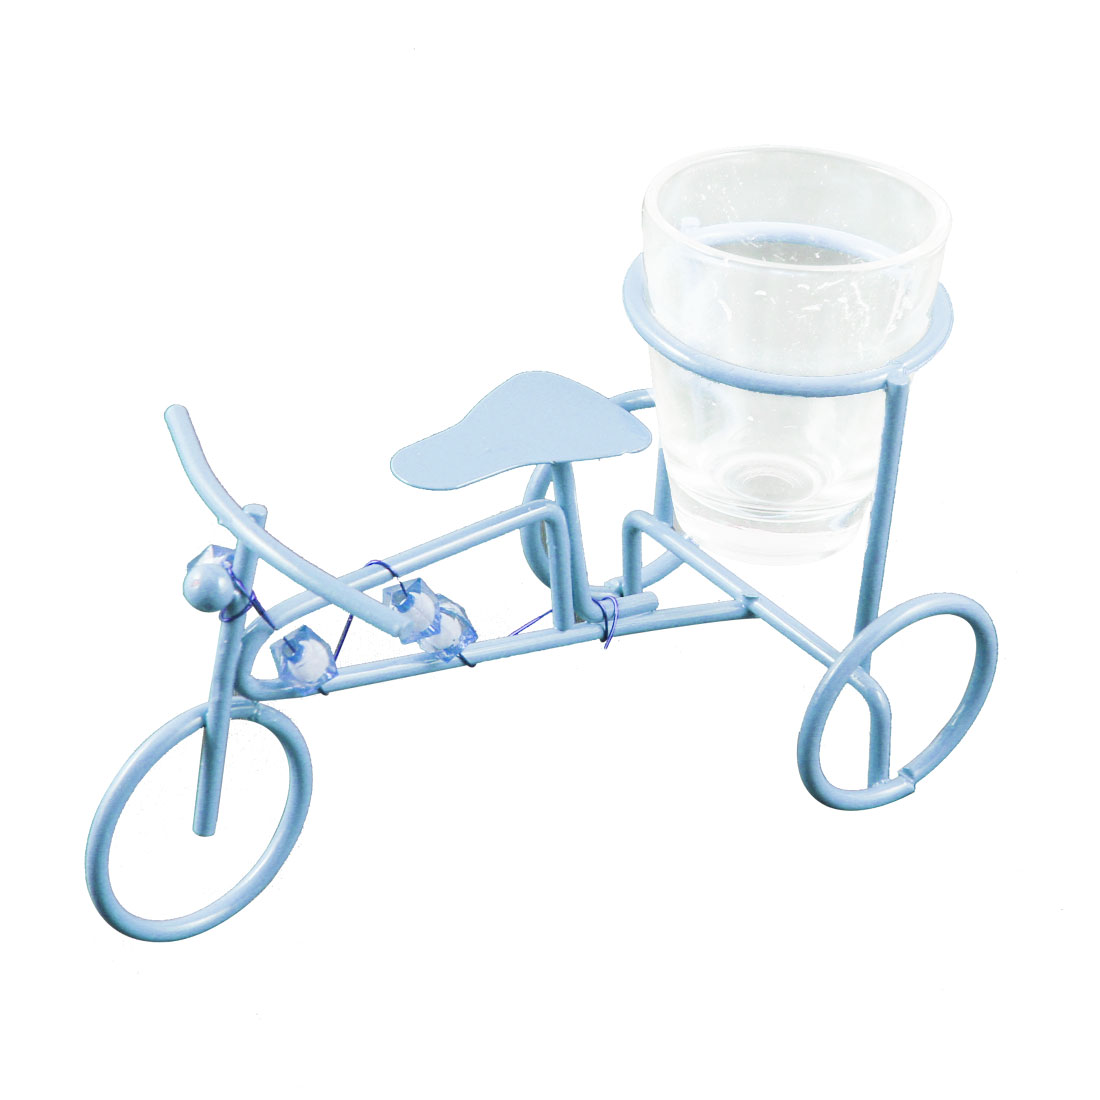 Blue Metal Bike Shaped Clear Wine Cup Shelf Ornament Gift Artware